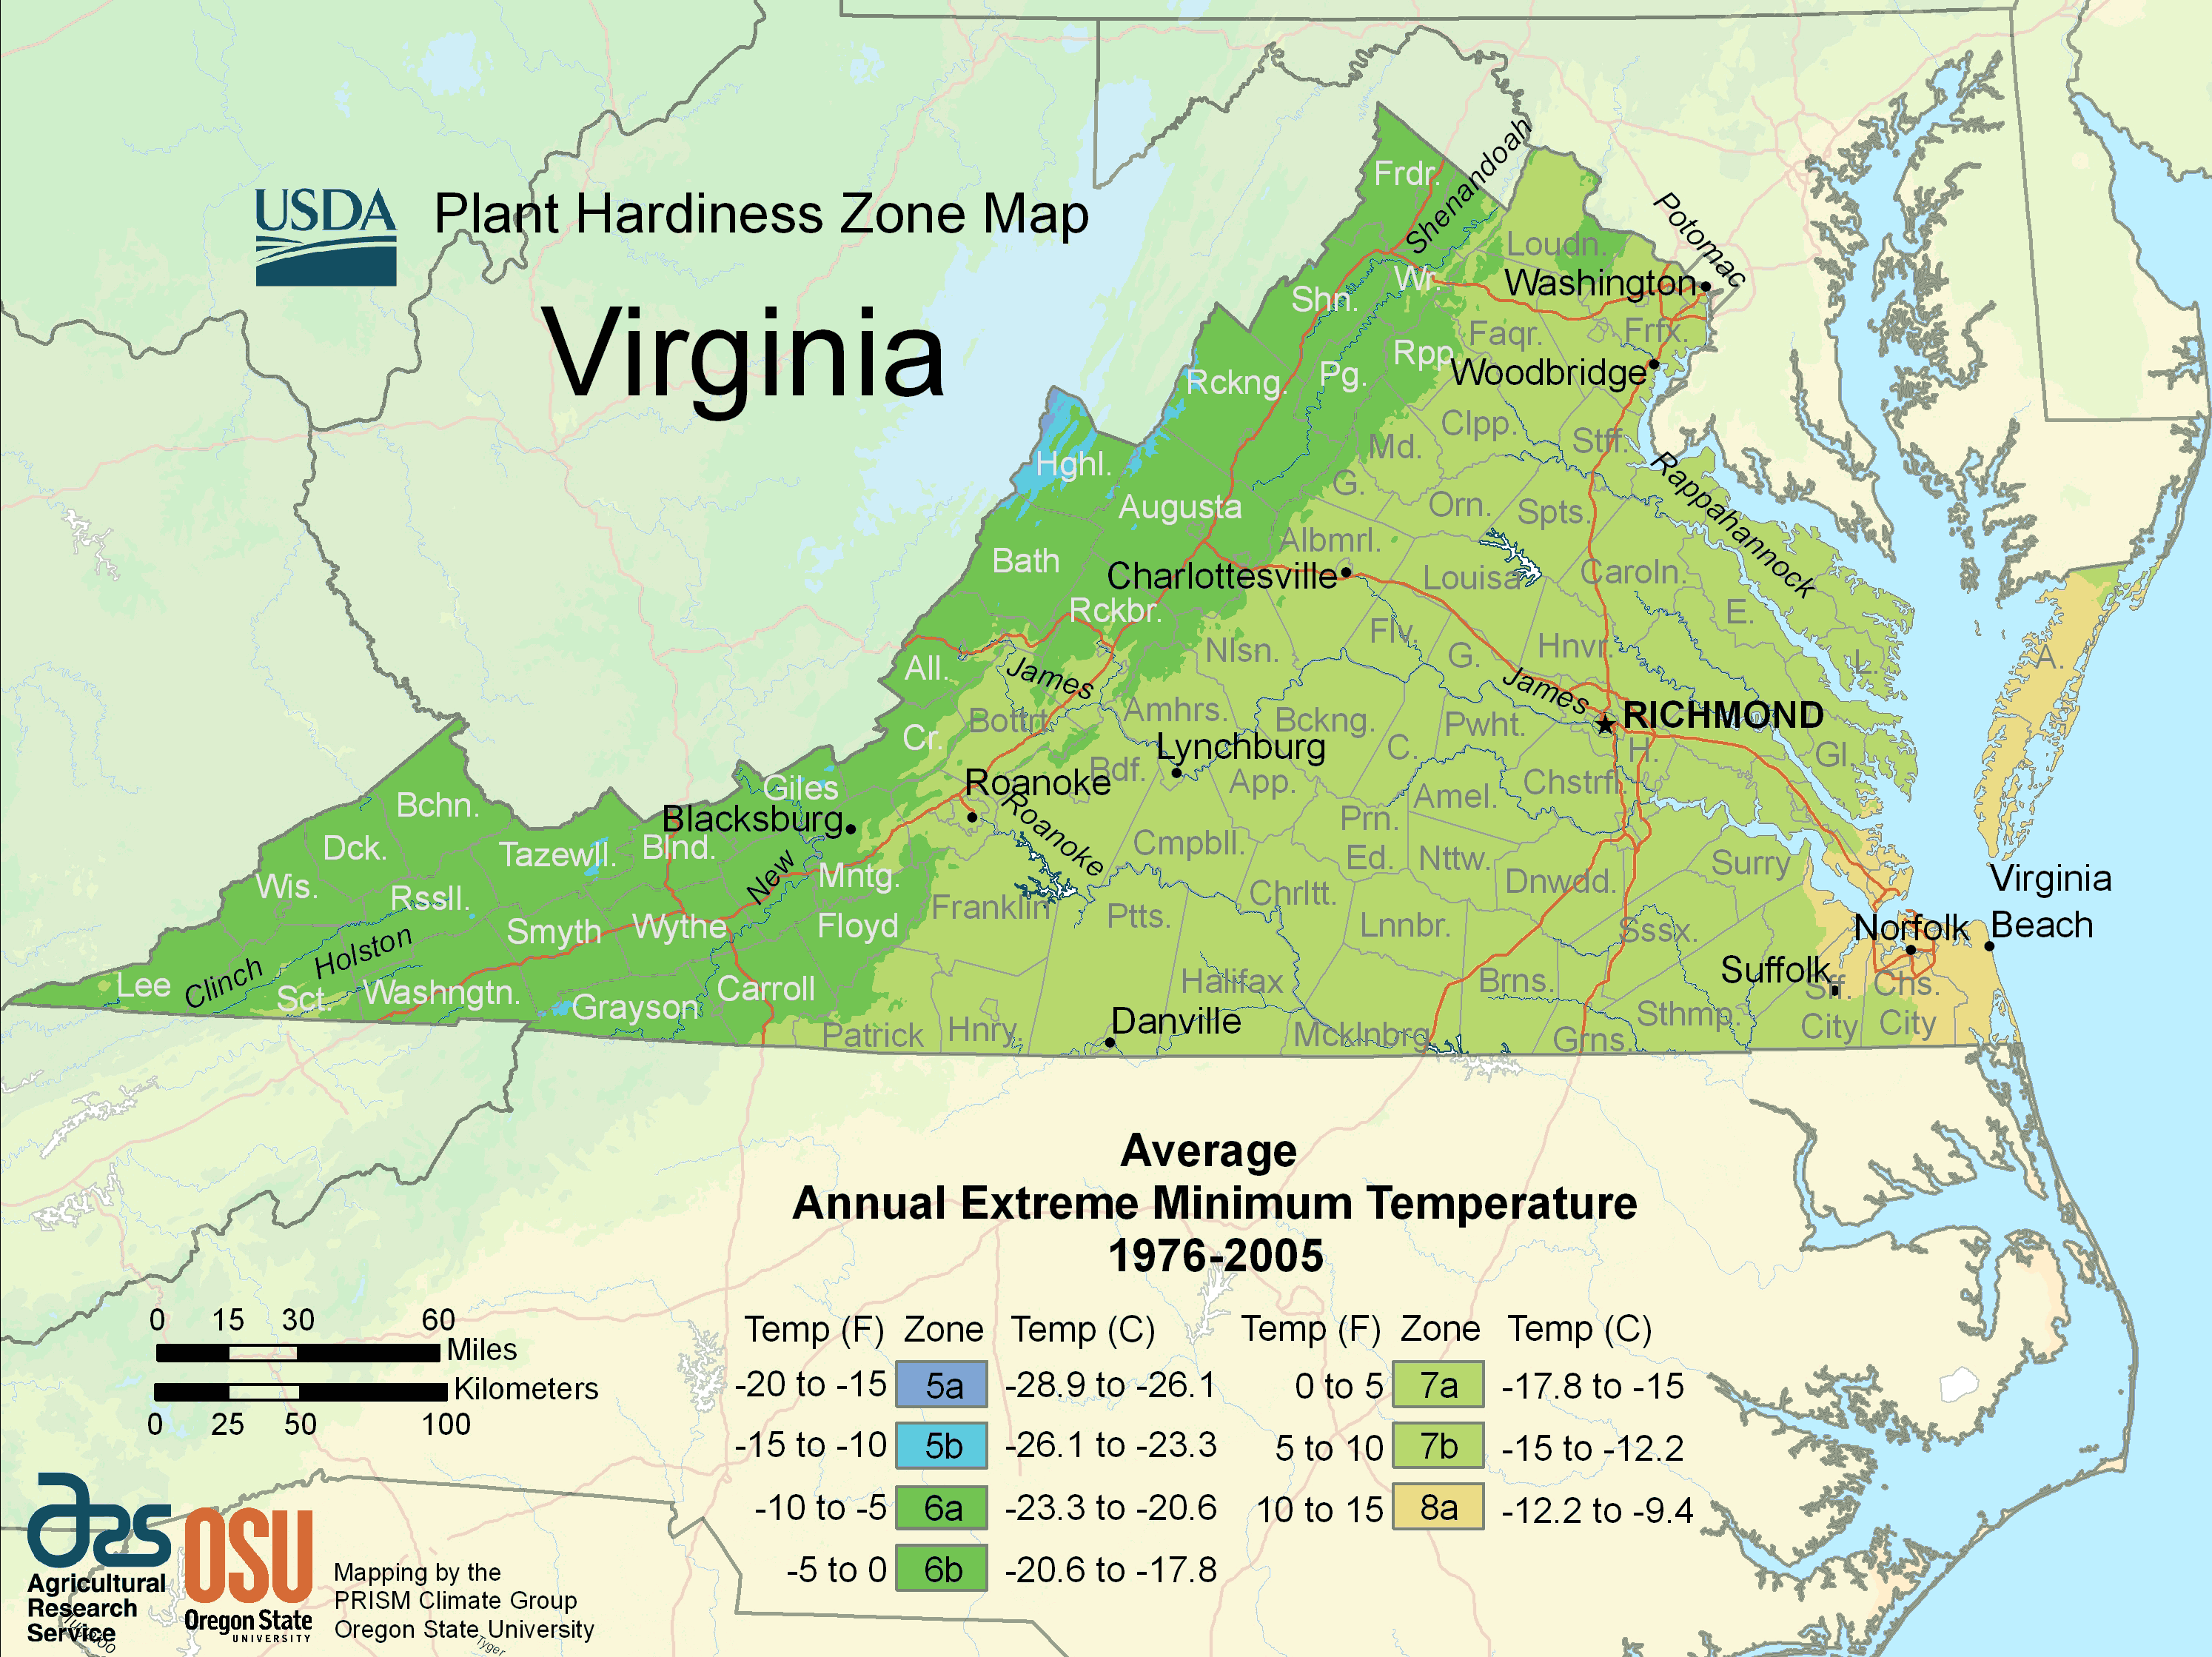 Virginia Plant Hardiness Zone Map Mapsofnet - State map of virginia